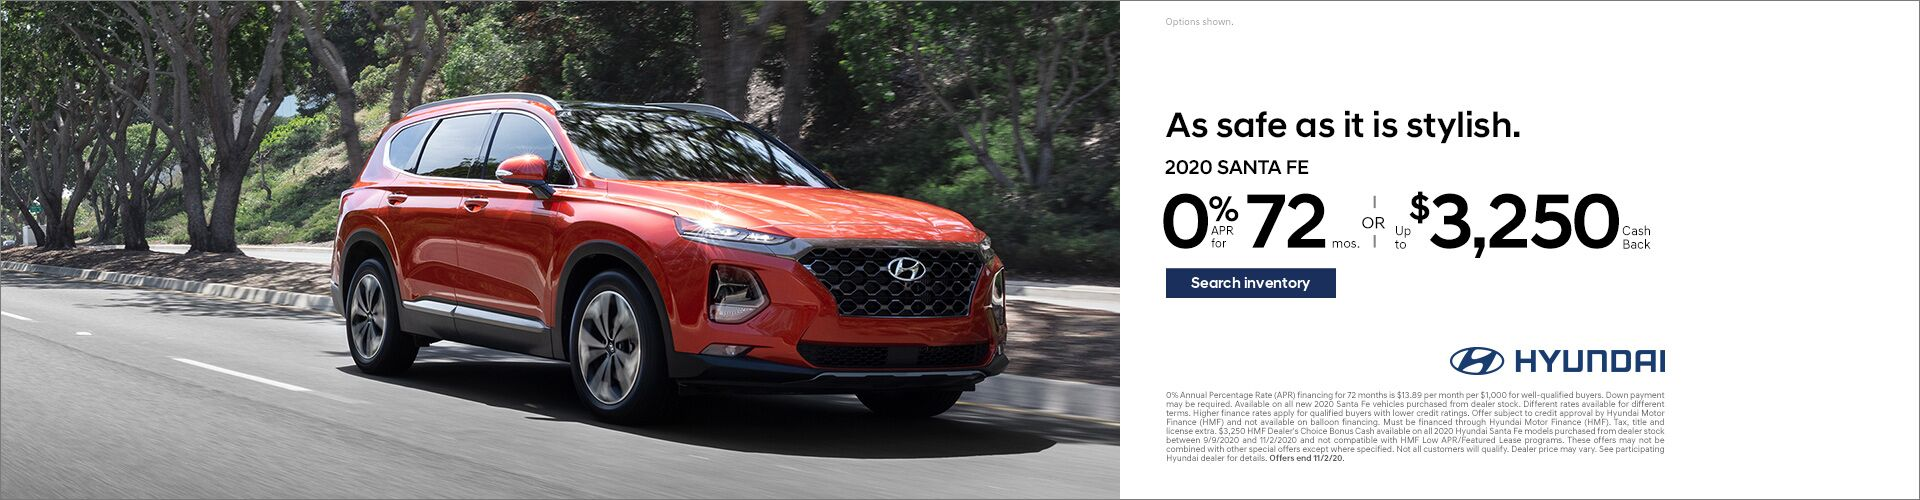 2020 September Hyundai Santa FE